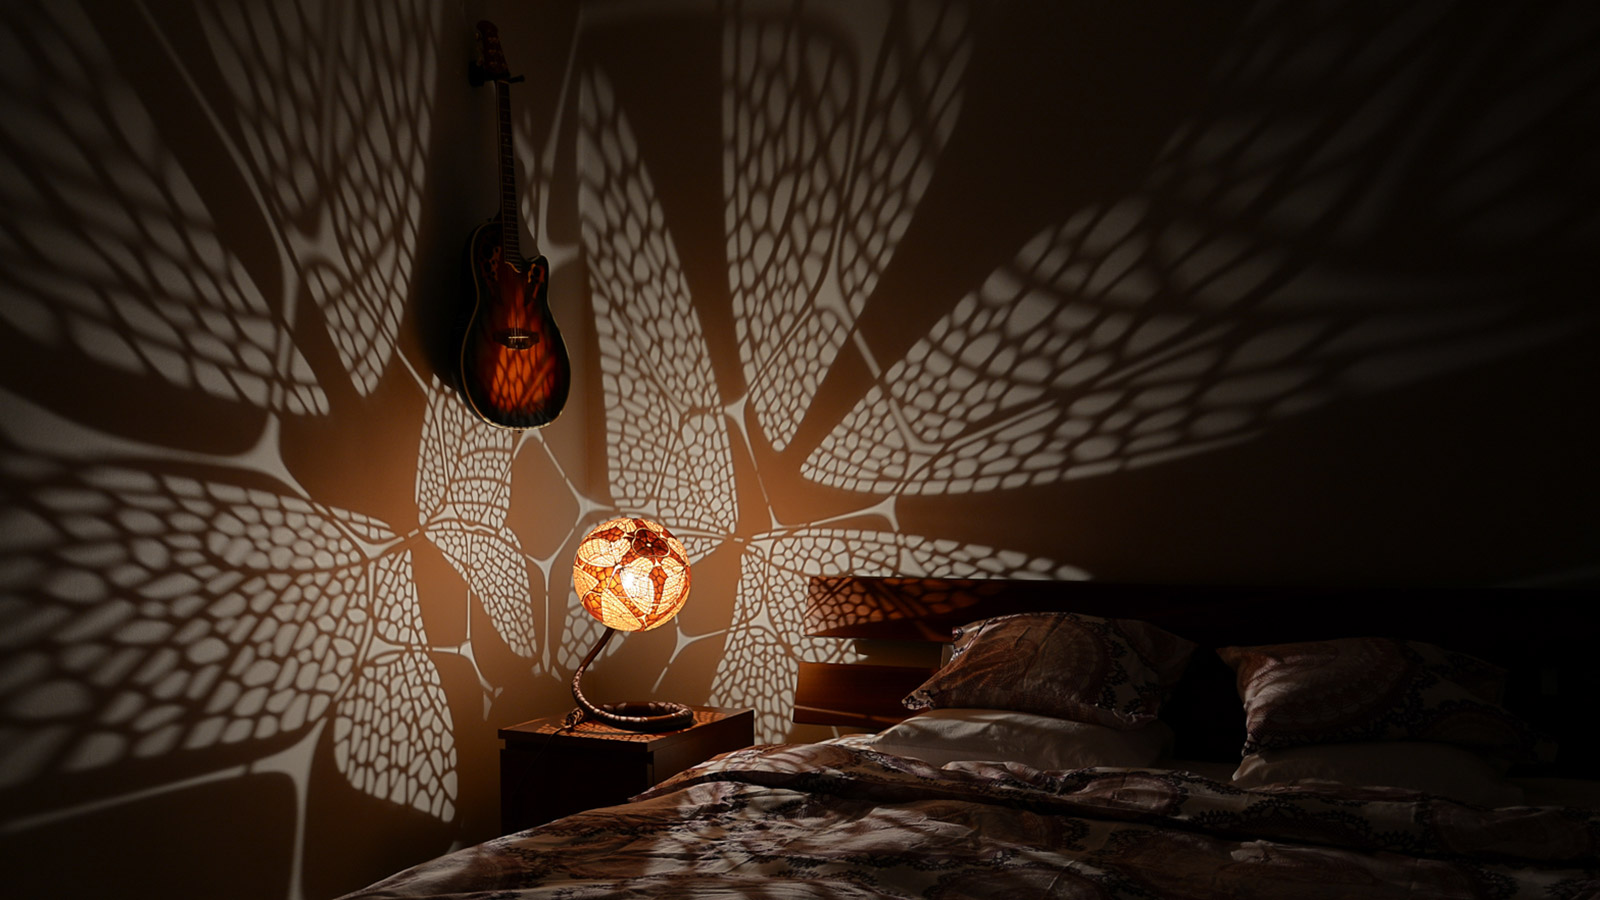 breathtaking gourd lamps by calabarte for sale photos